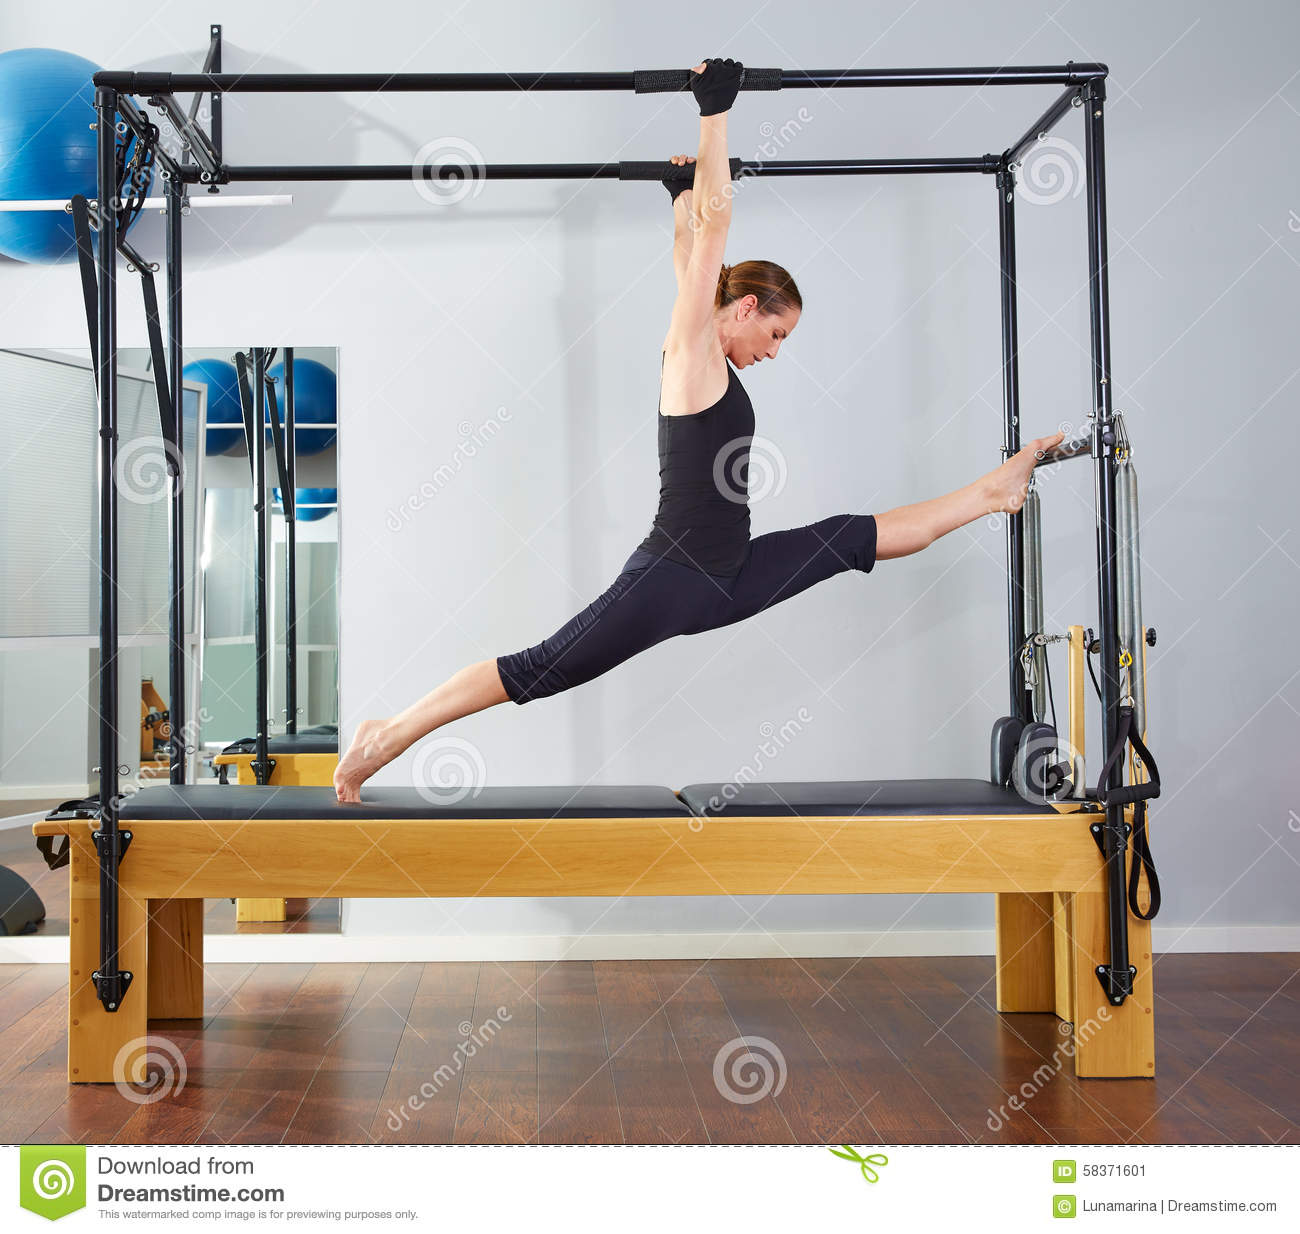 Cadillac Pilates: Pilates Woman In Cadillac Legs Split Reformer Stock Image